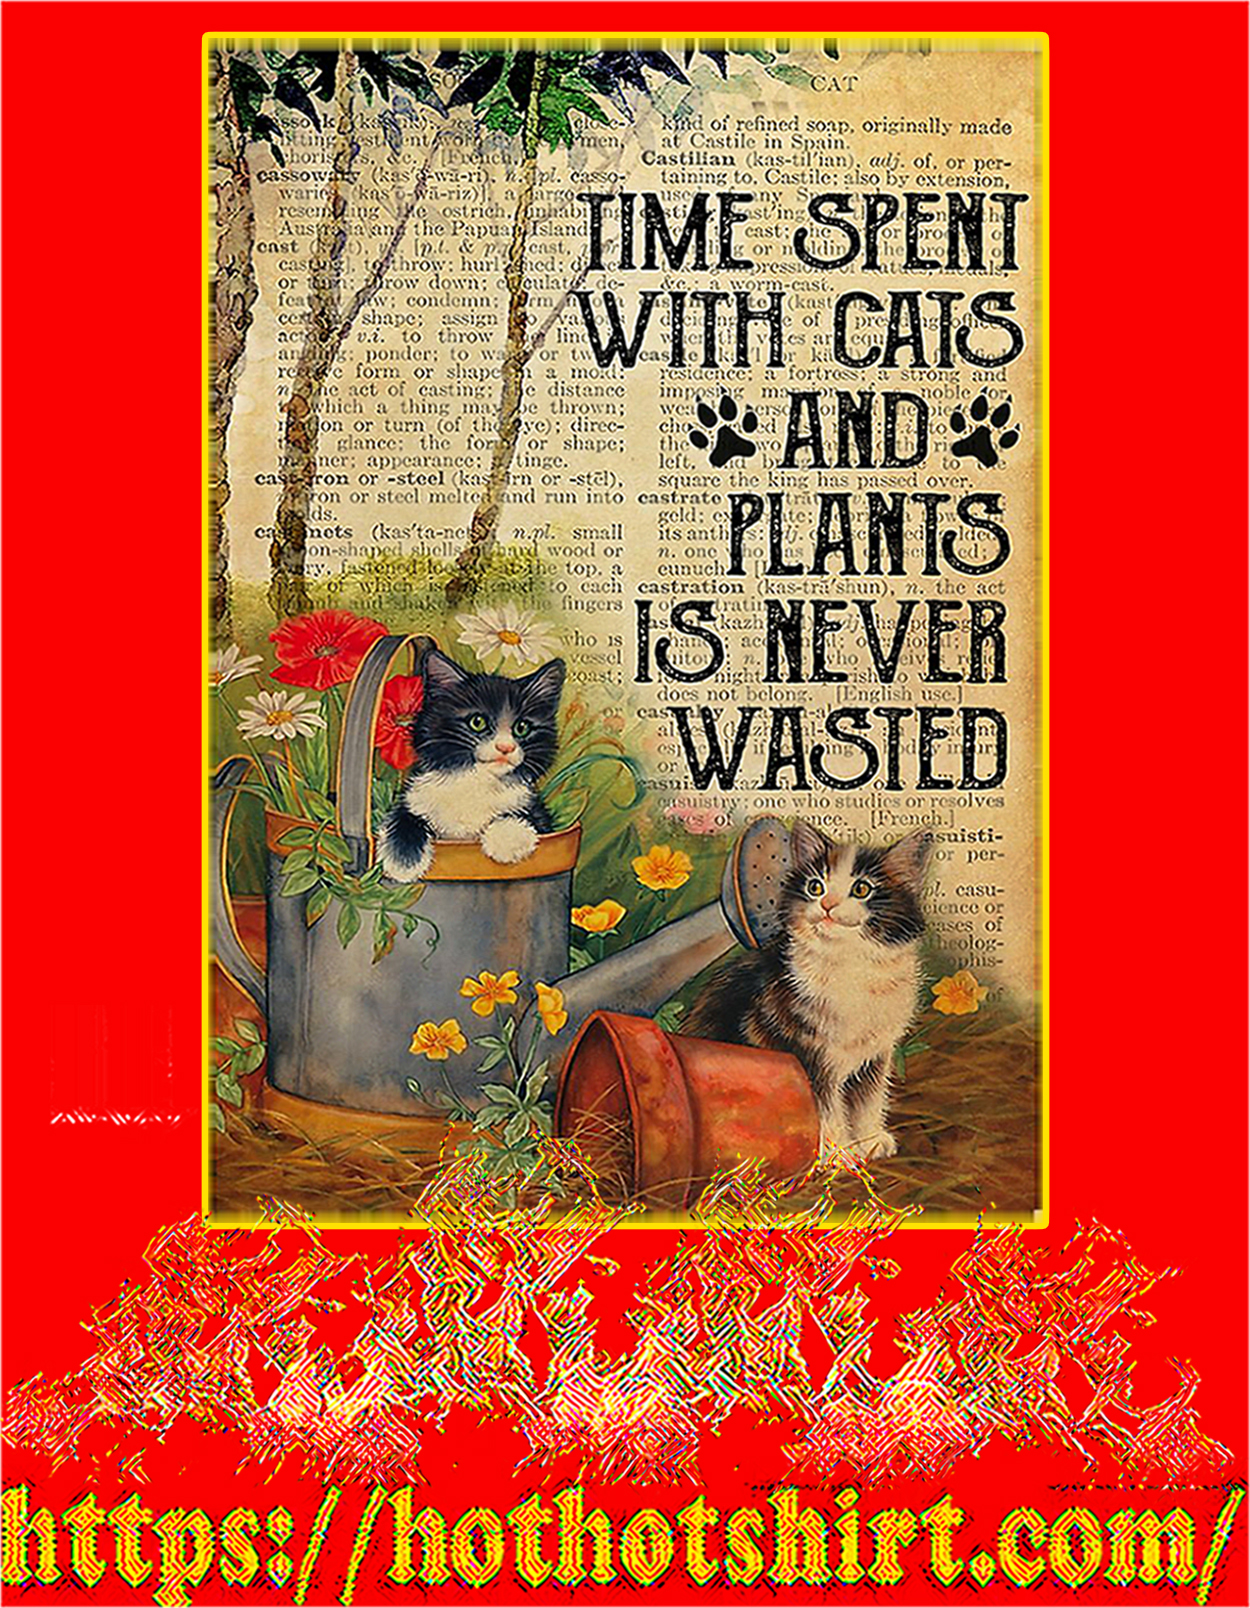 Dictionary Time spent with cats and plants is never wasted poster - A3